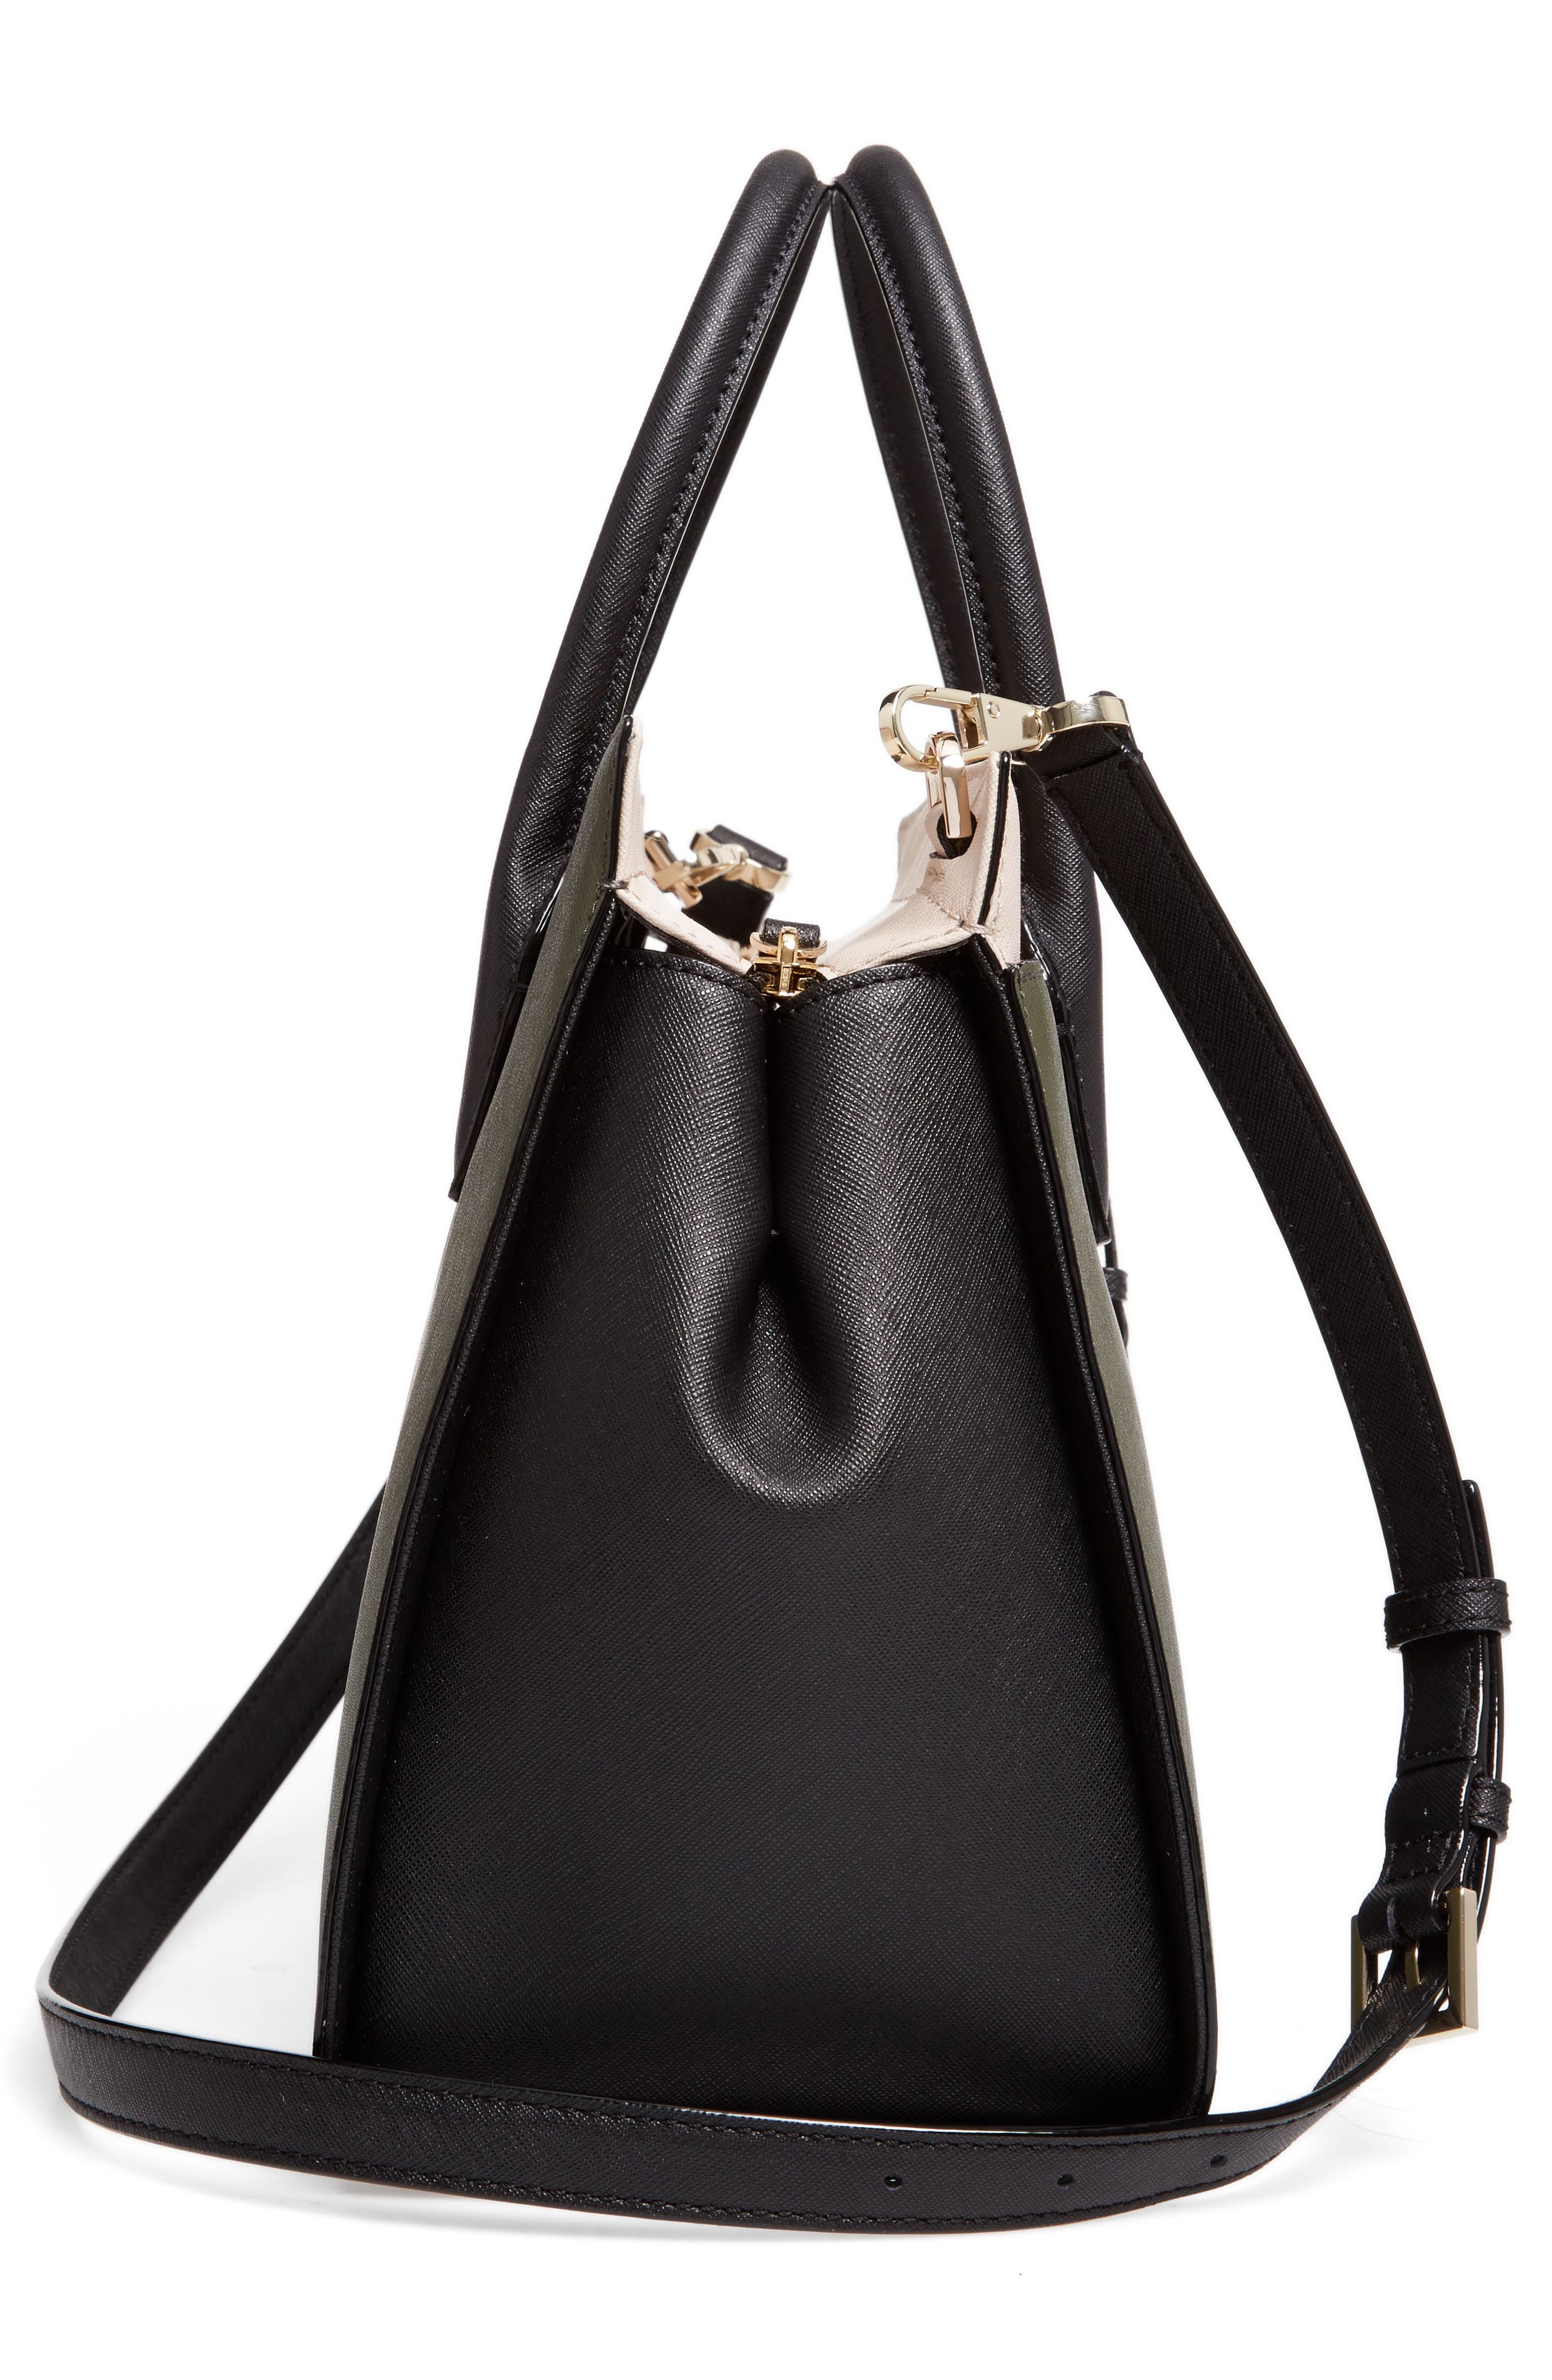 cameron street - candace leather satchel,                             Alternate thumbnail 5, color,                             301